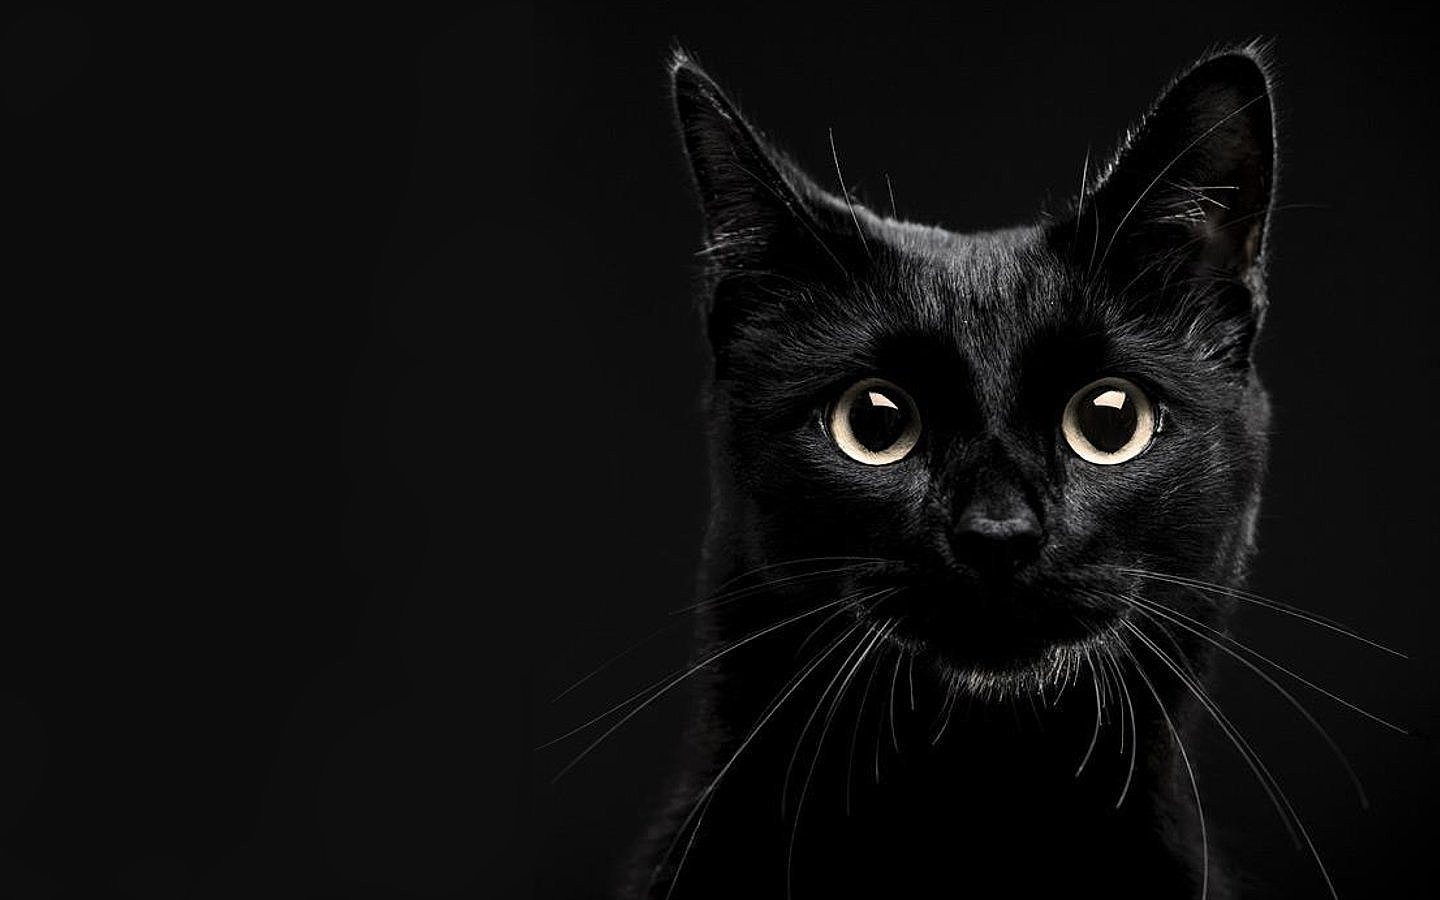 Chats Images Beautiful Black Cat Hd Fond D Ecran And Background